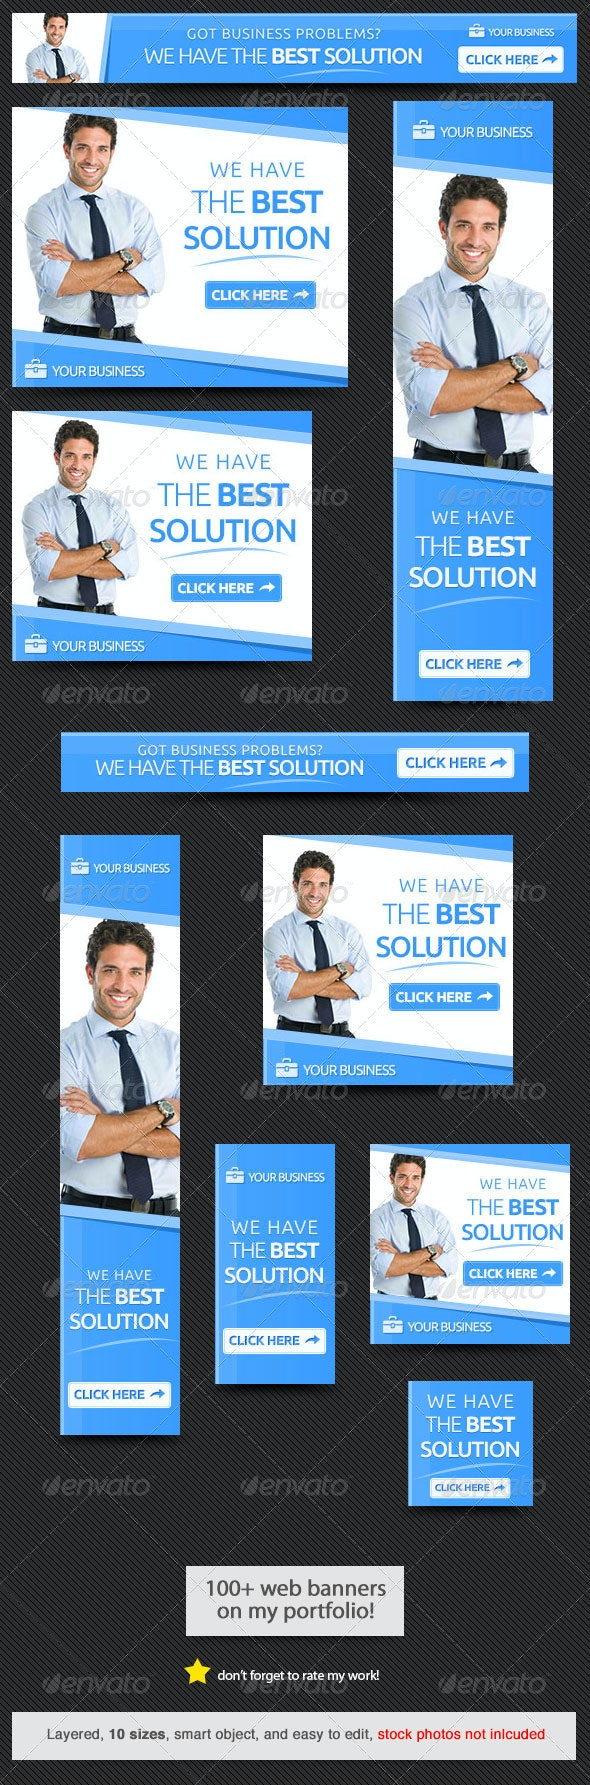 Business Solution Web Banner - Banners & Ads Web Elements